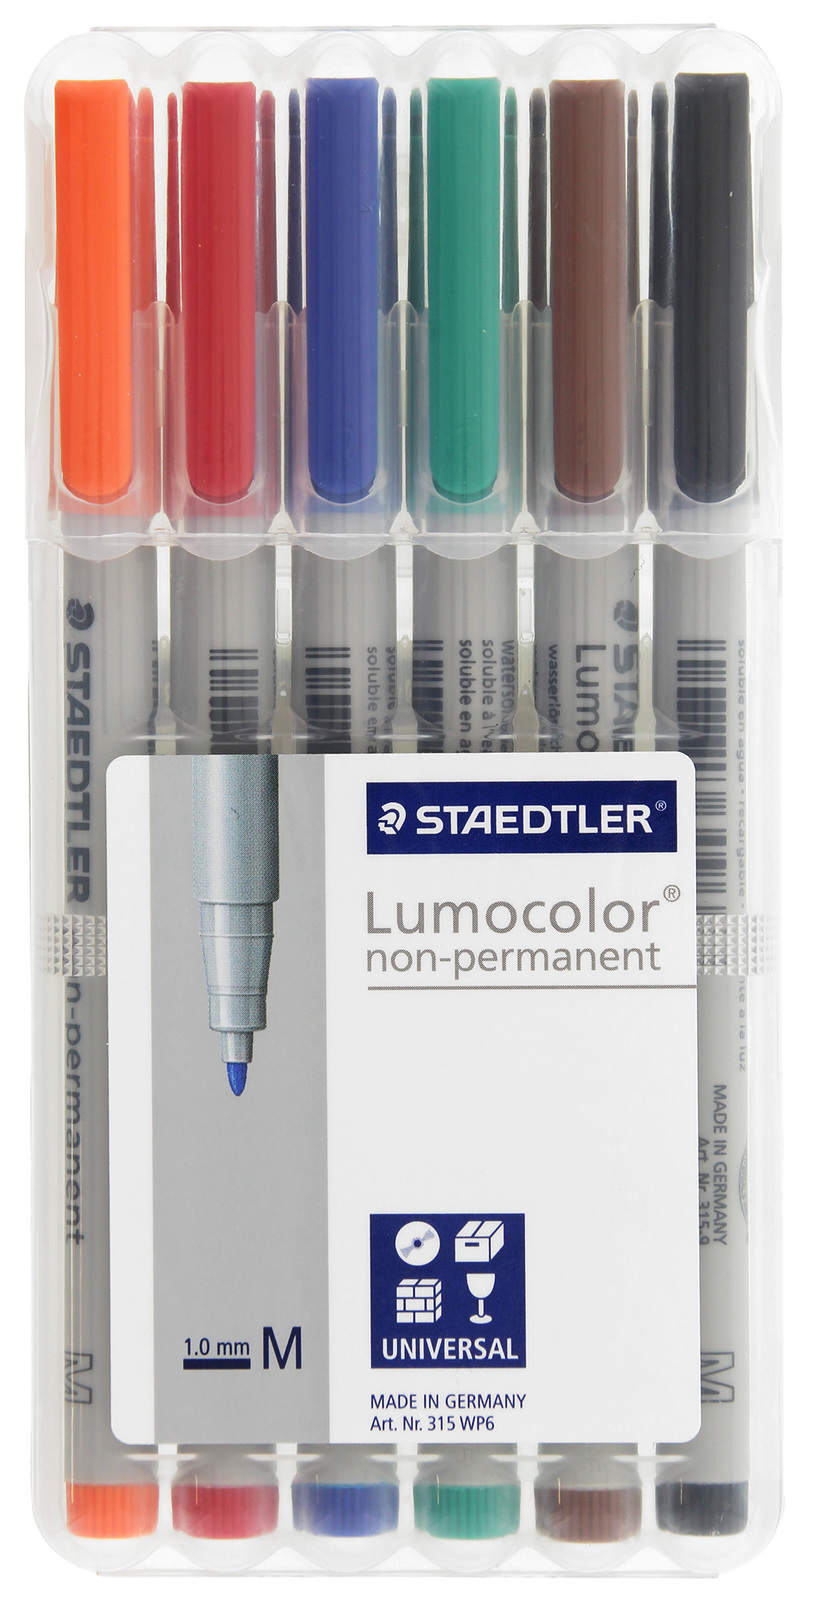 Chessex Color Water Soluble Markers 6 Pack image